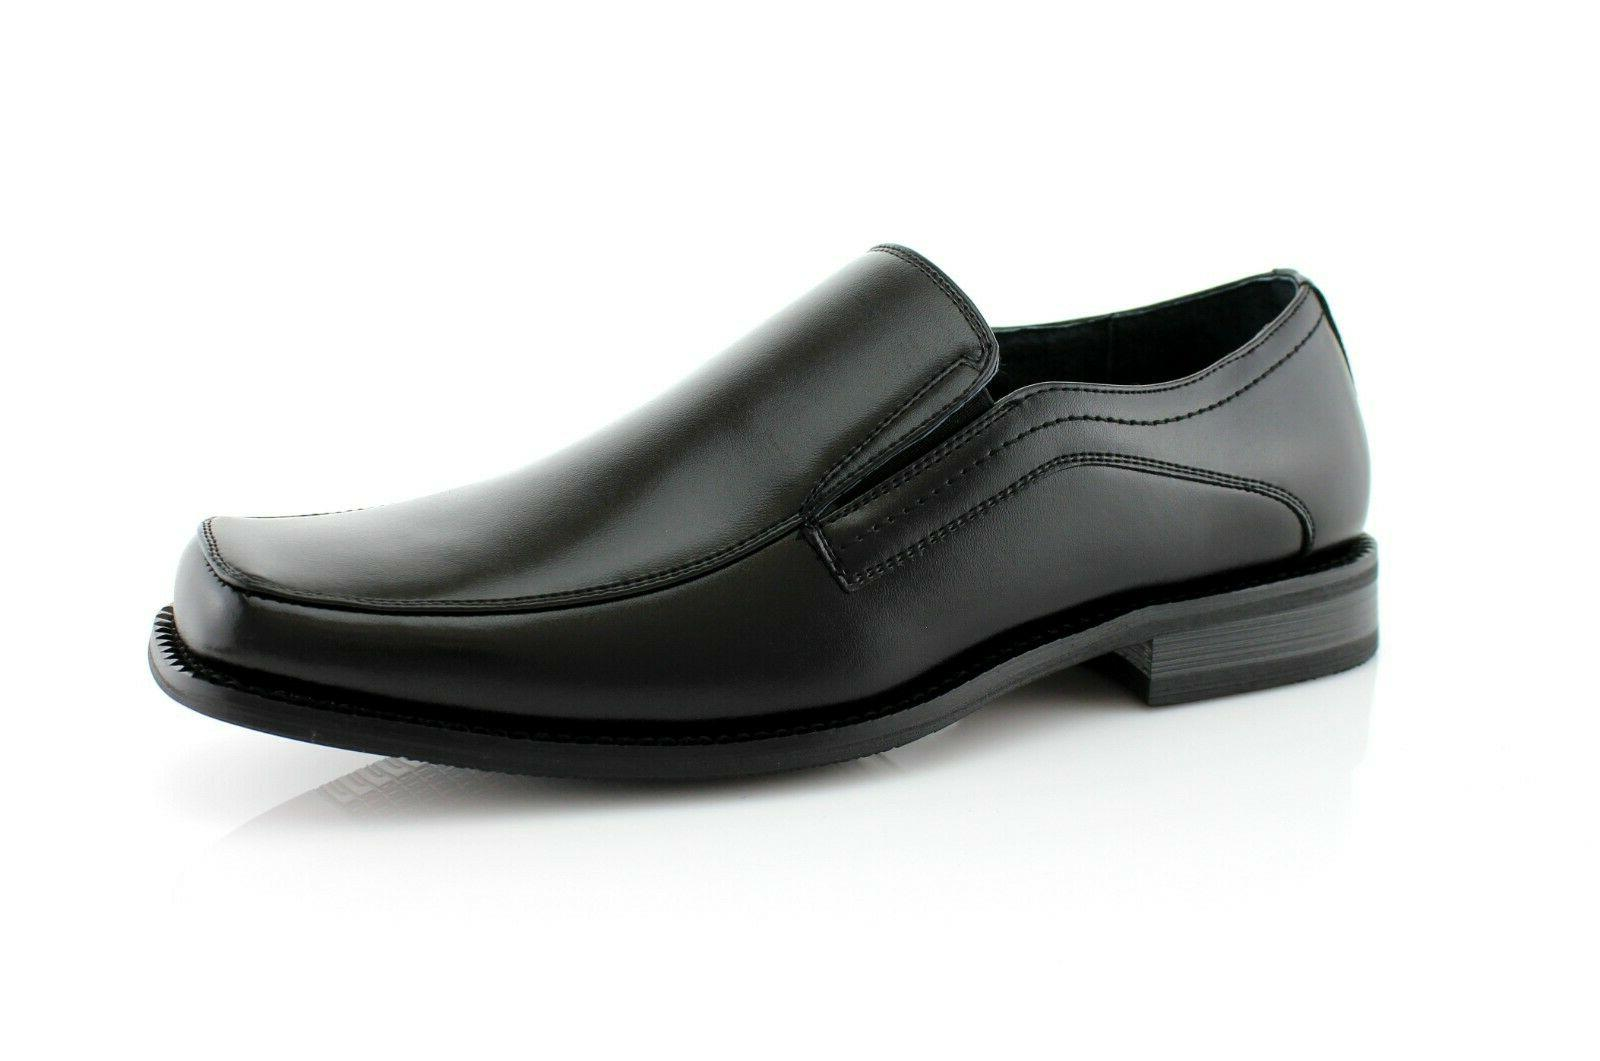 Men's Dress Shoes Slip-On Formal Loafers